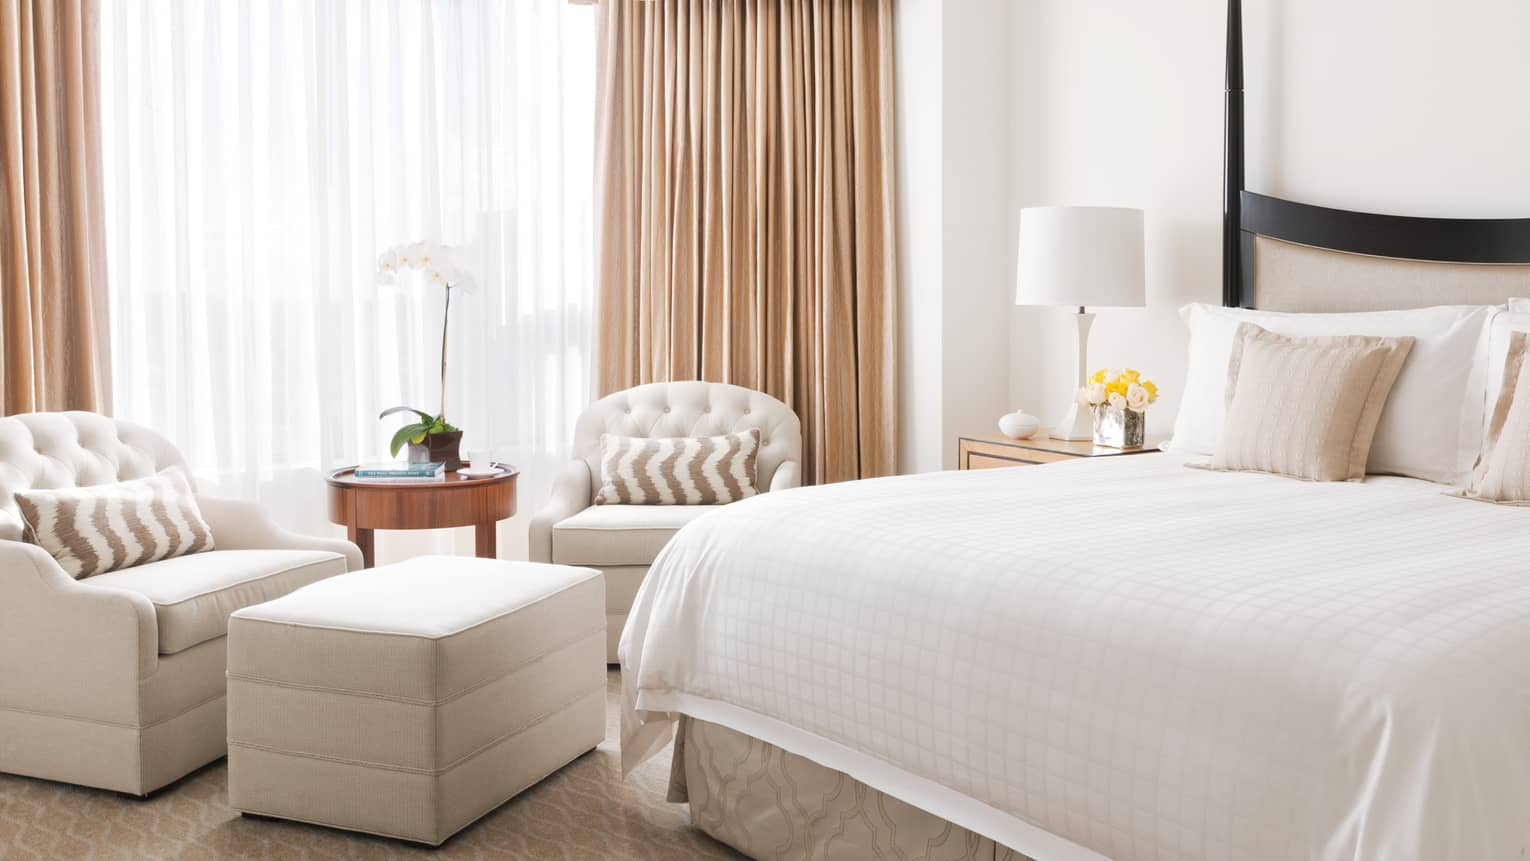 The light pours in from the windows in a neutral four seasons guest room furnishes with two cream arm chairs, a natural round wooden table, a black wooden bed and white linens